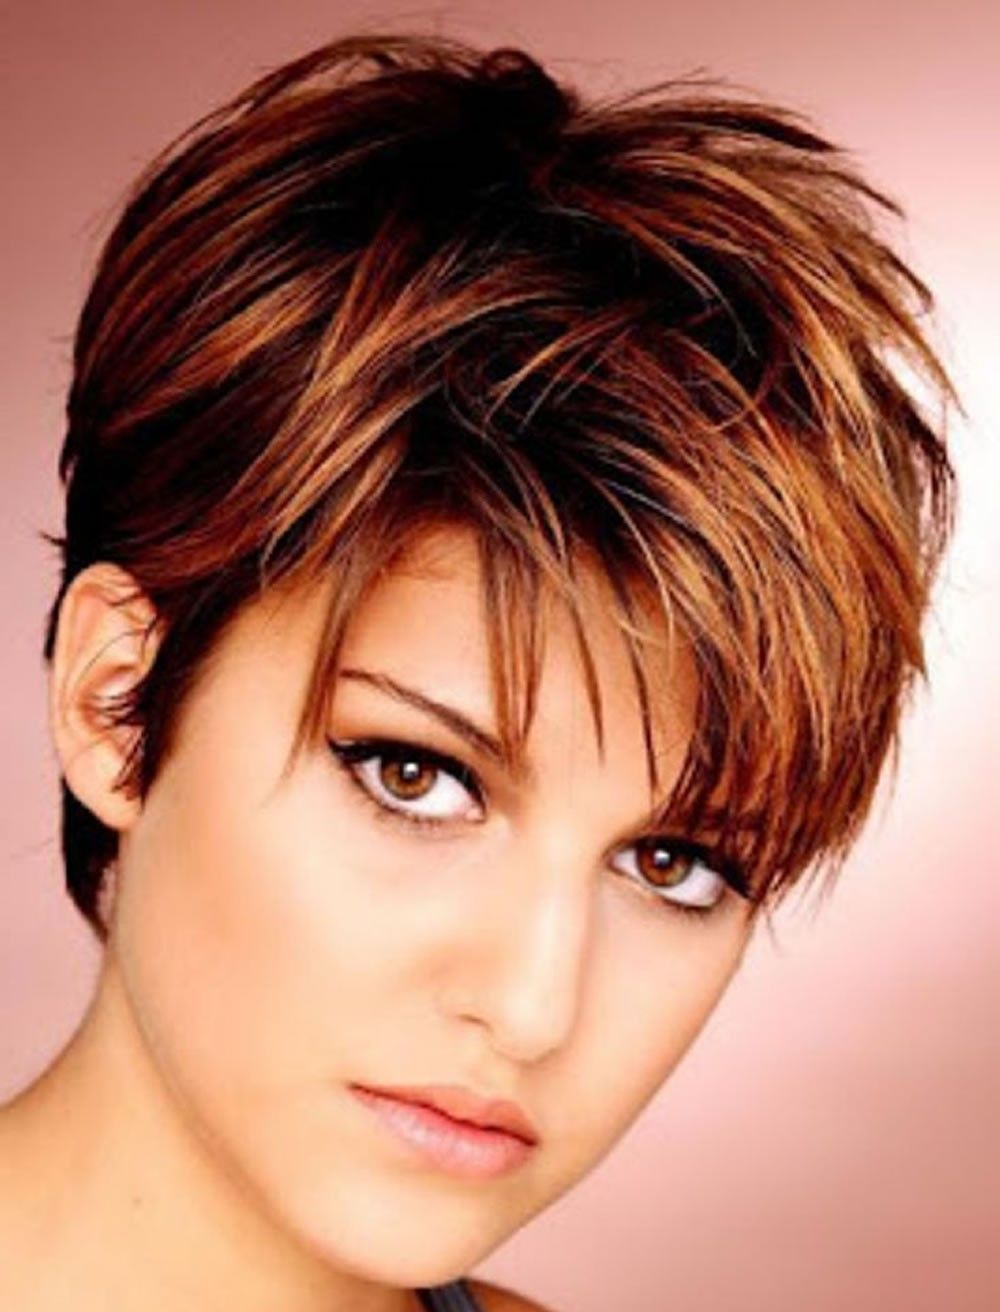 Short Haircuts For Round Faces And Thin Hair Over 50 Archives Very Short Bob Hairstyles Haircut For Thick Hair Short Hair Styles For Round Faces